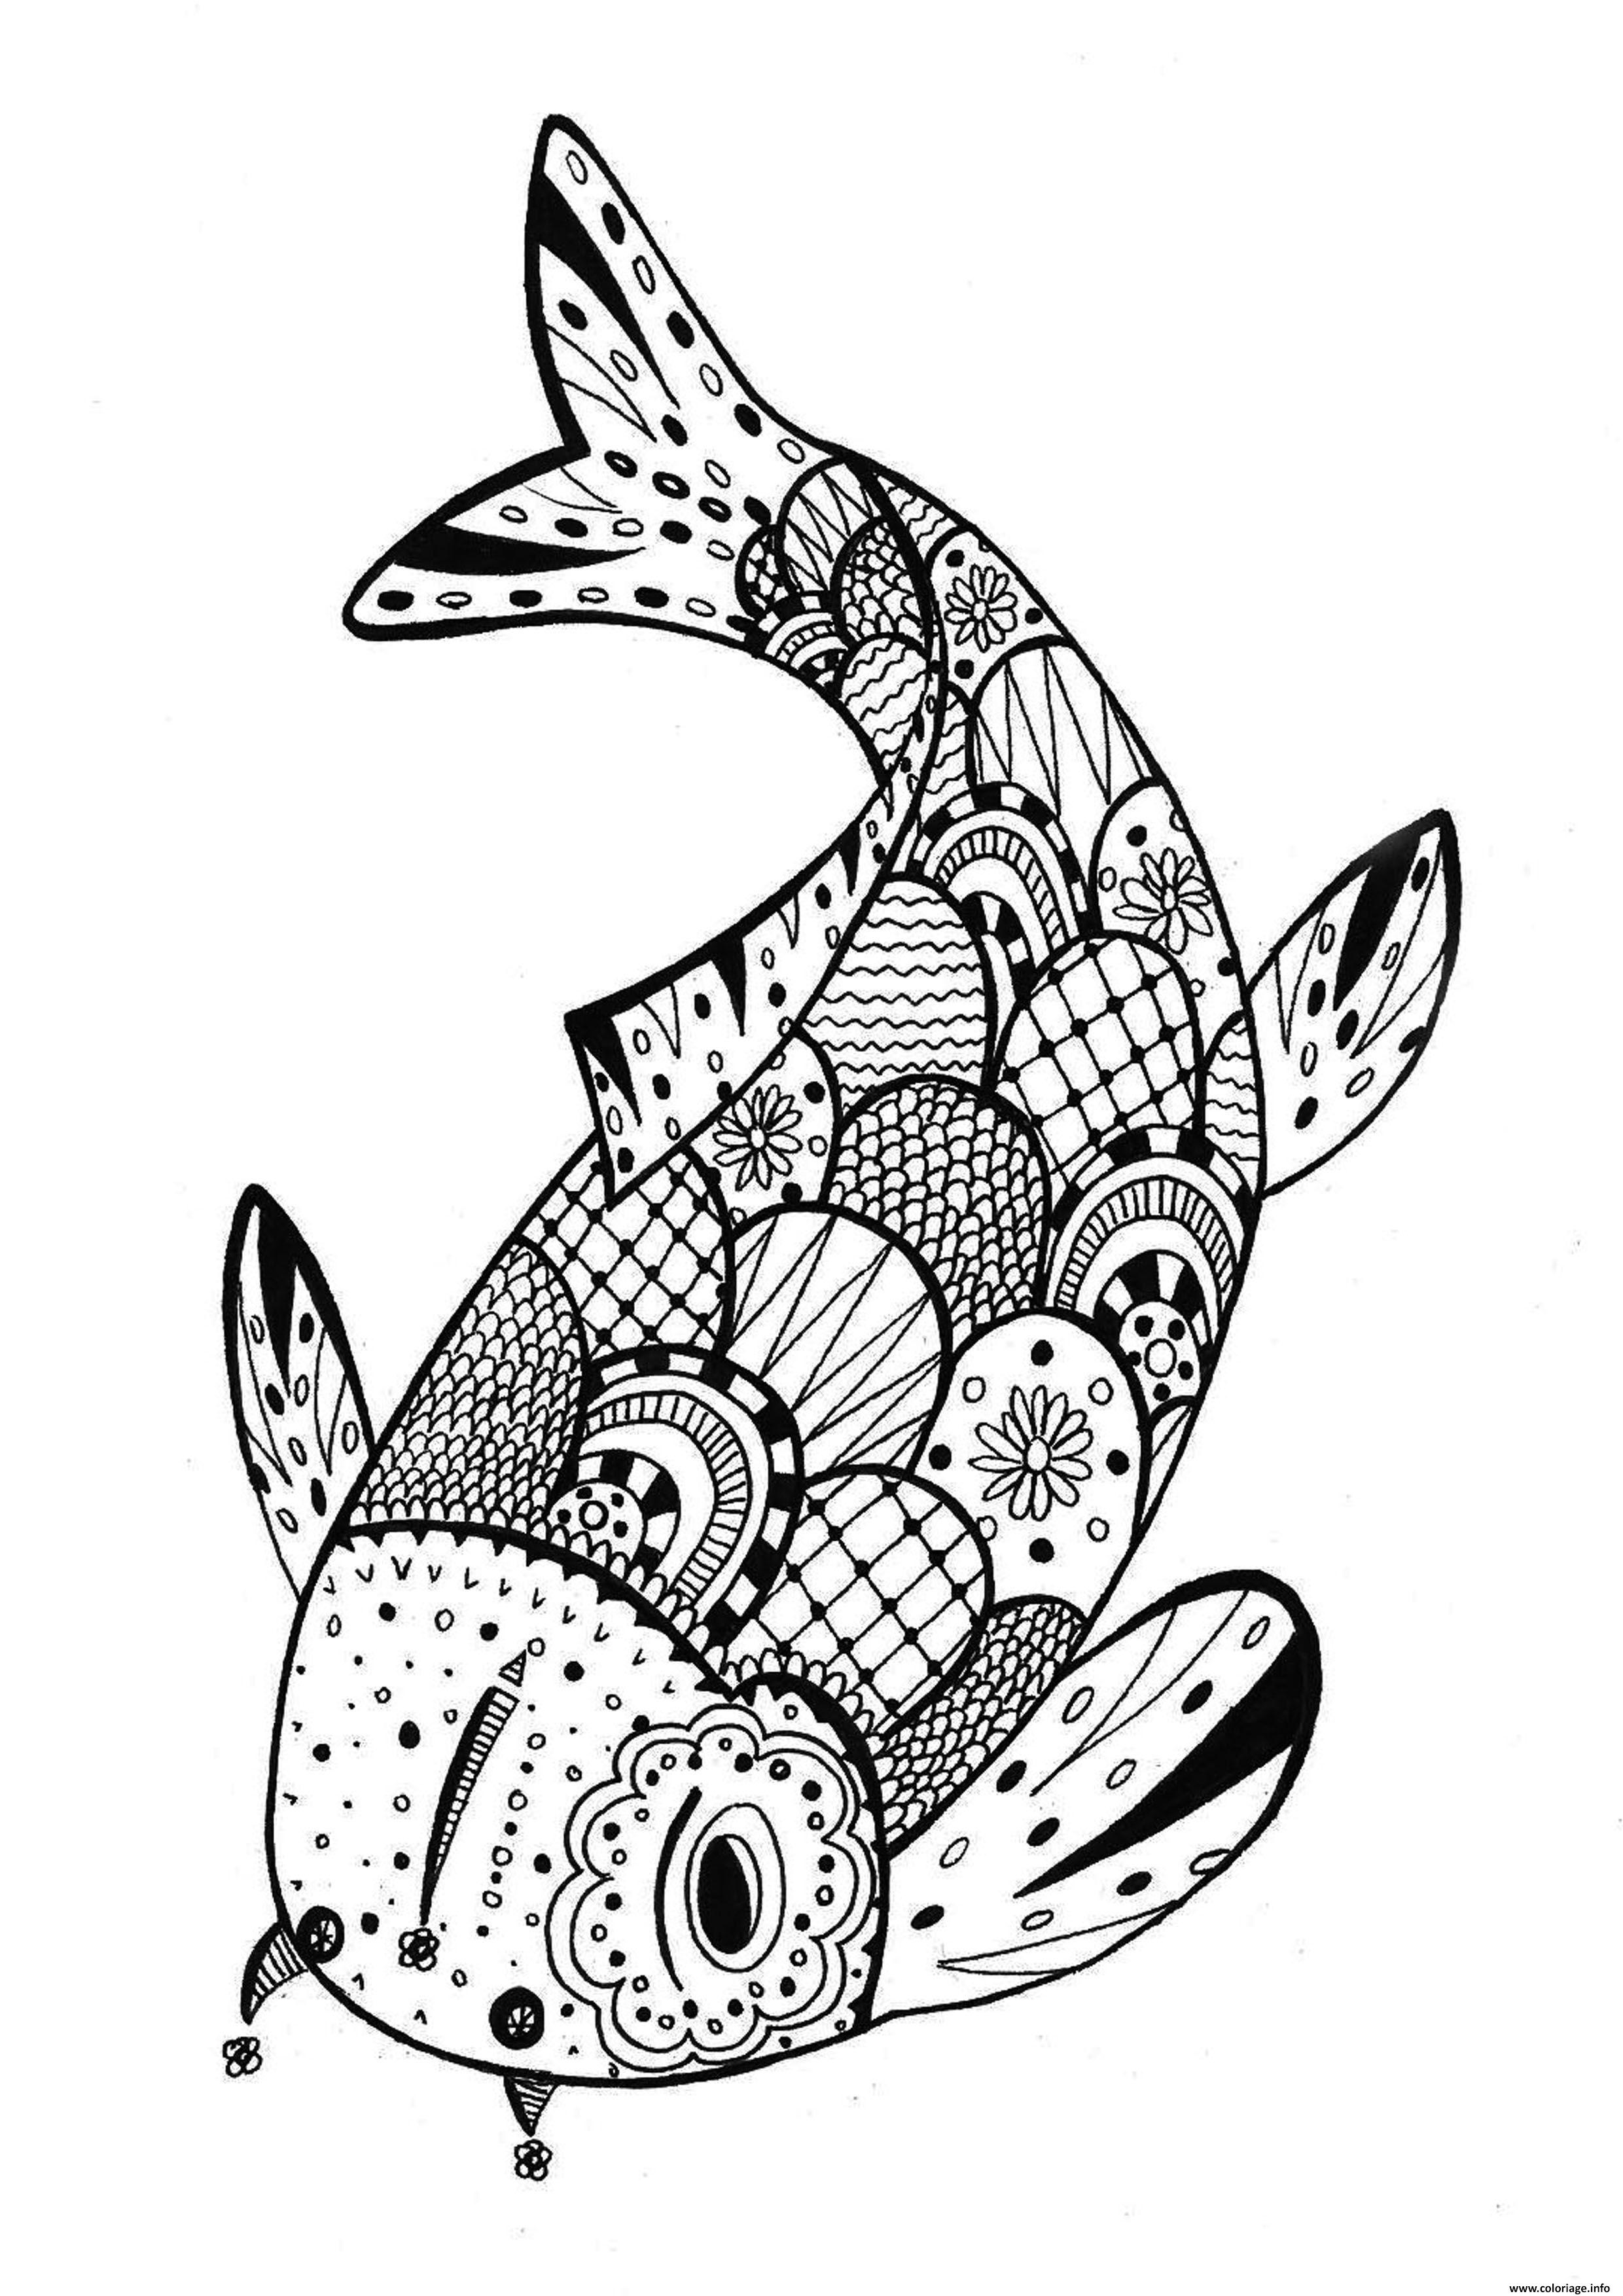 Coloriage poisson davril mandala - Dessin poisson simple ...